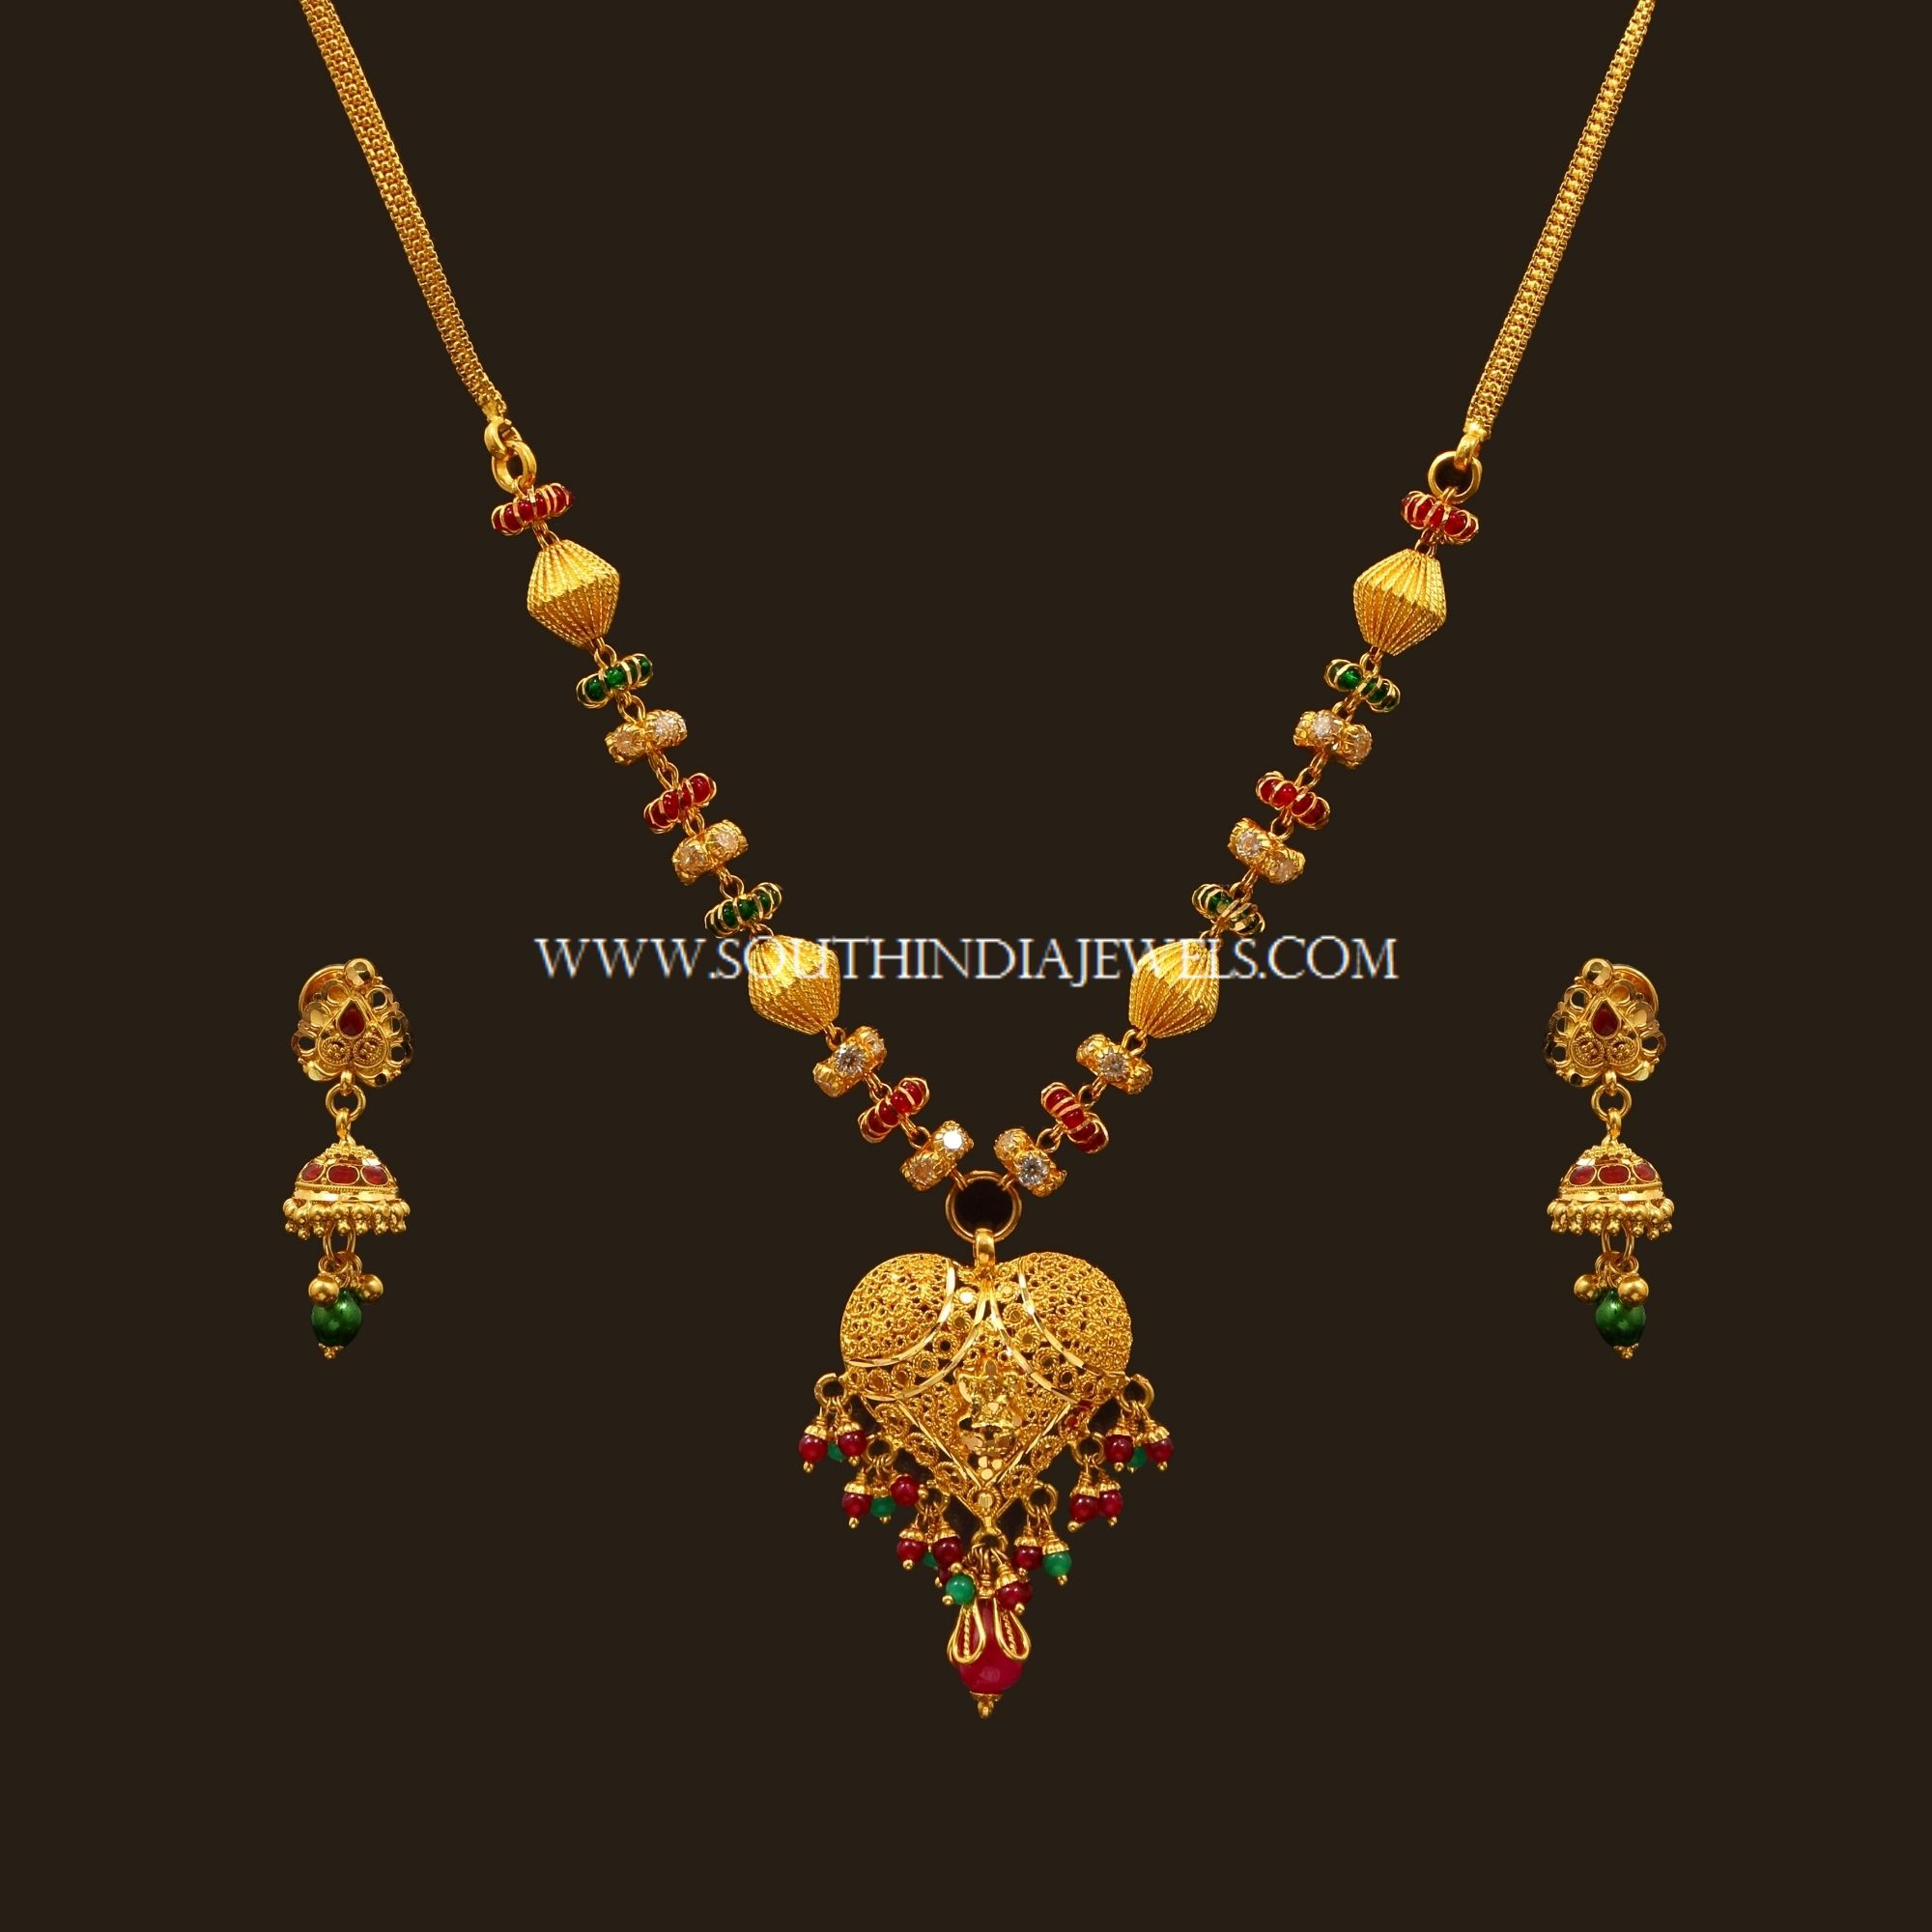 Gold necklace designs with price in rupees jewelry gallery - Latest Gold Necklace Set Designs With Price